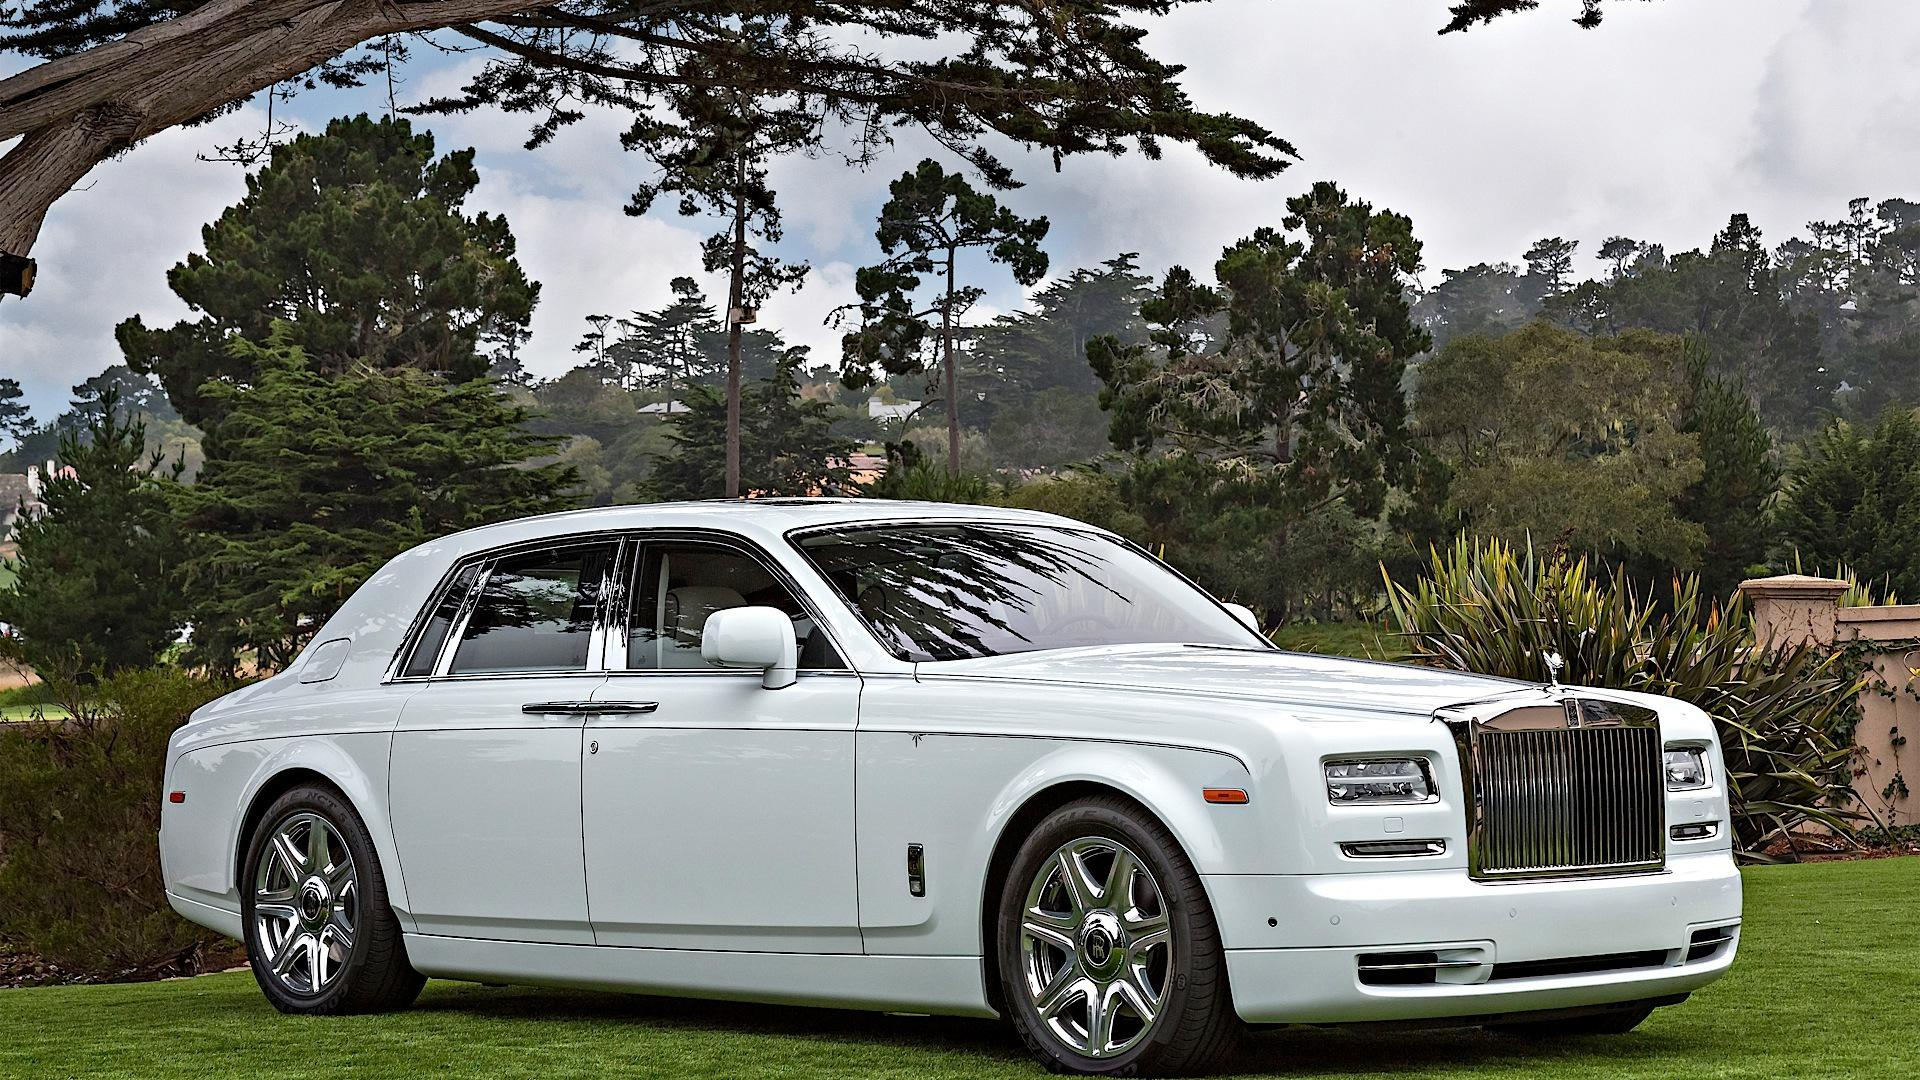 Rolls-Royce Phantom Wallpapers, Pictures, Images